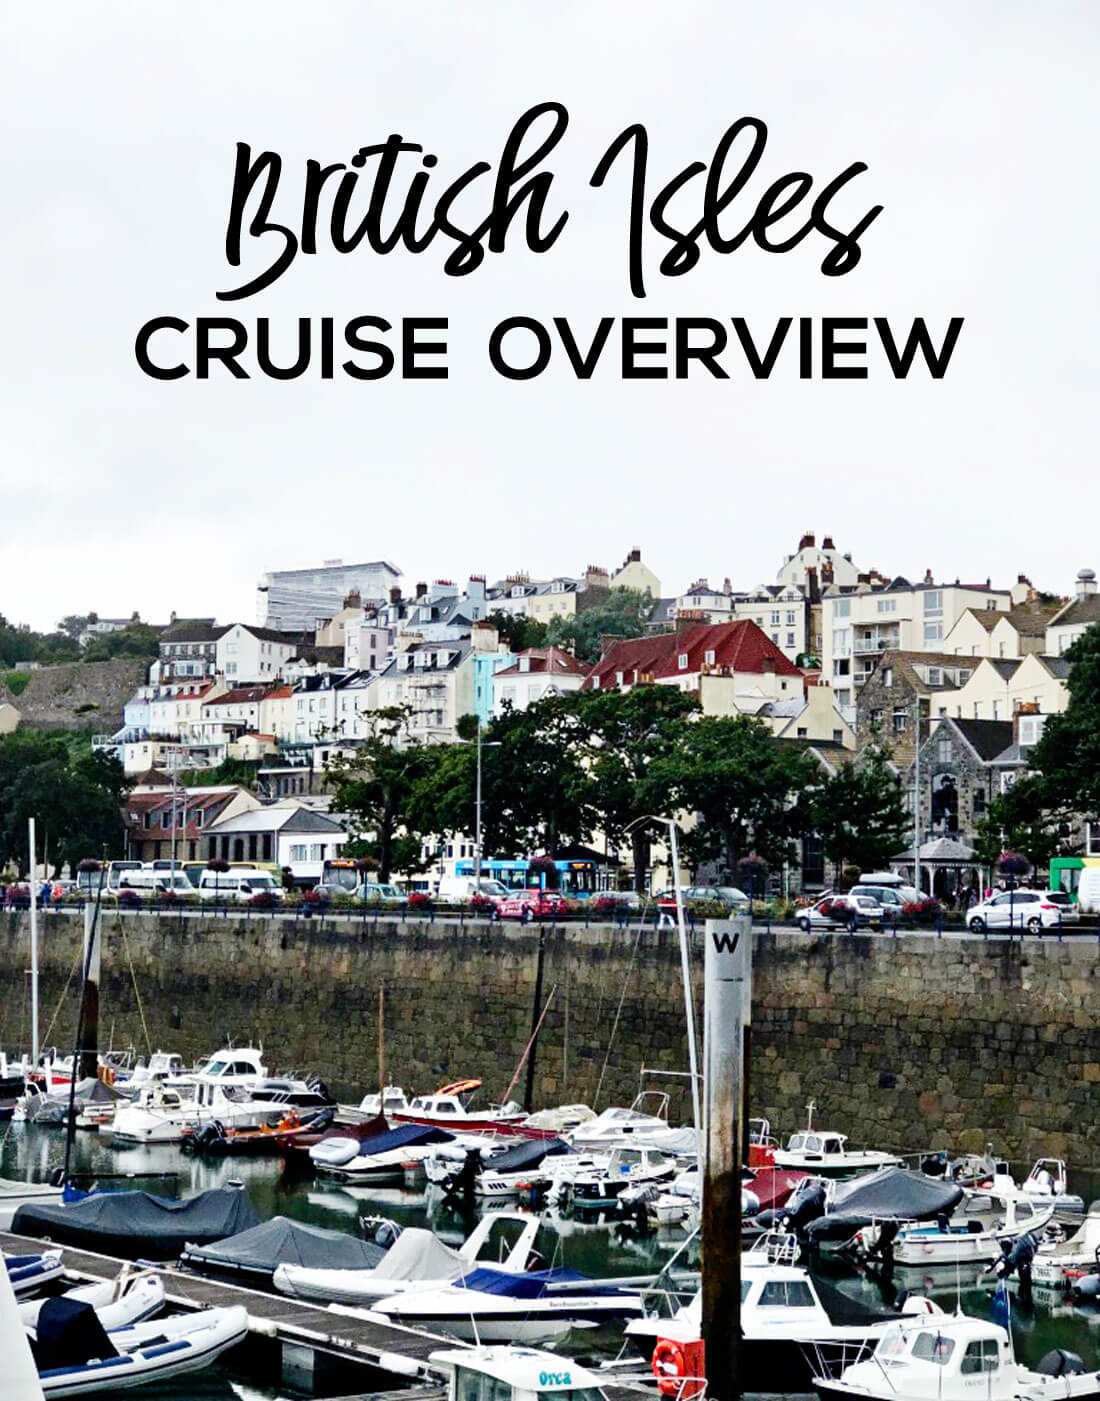 British Isles Cruise Overview - a recap of the 12 day cruise through the isles.